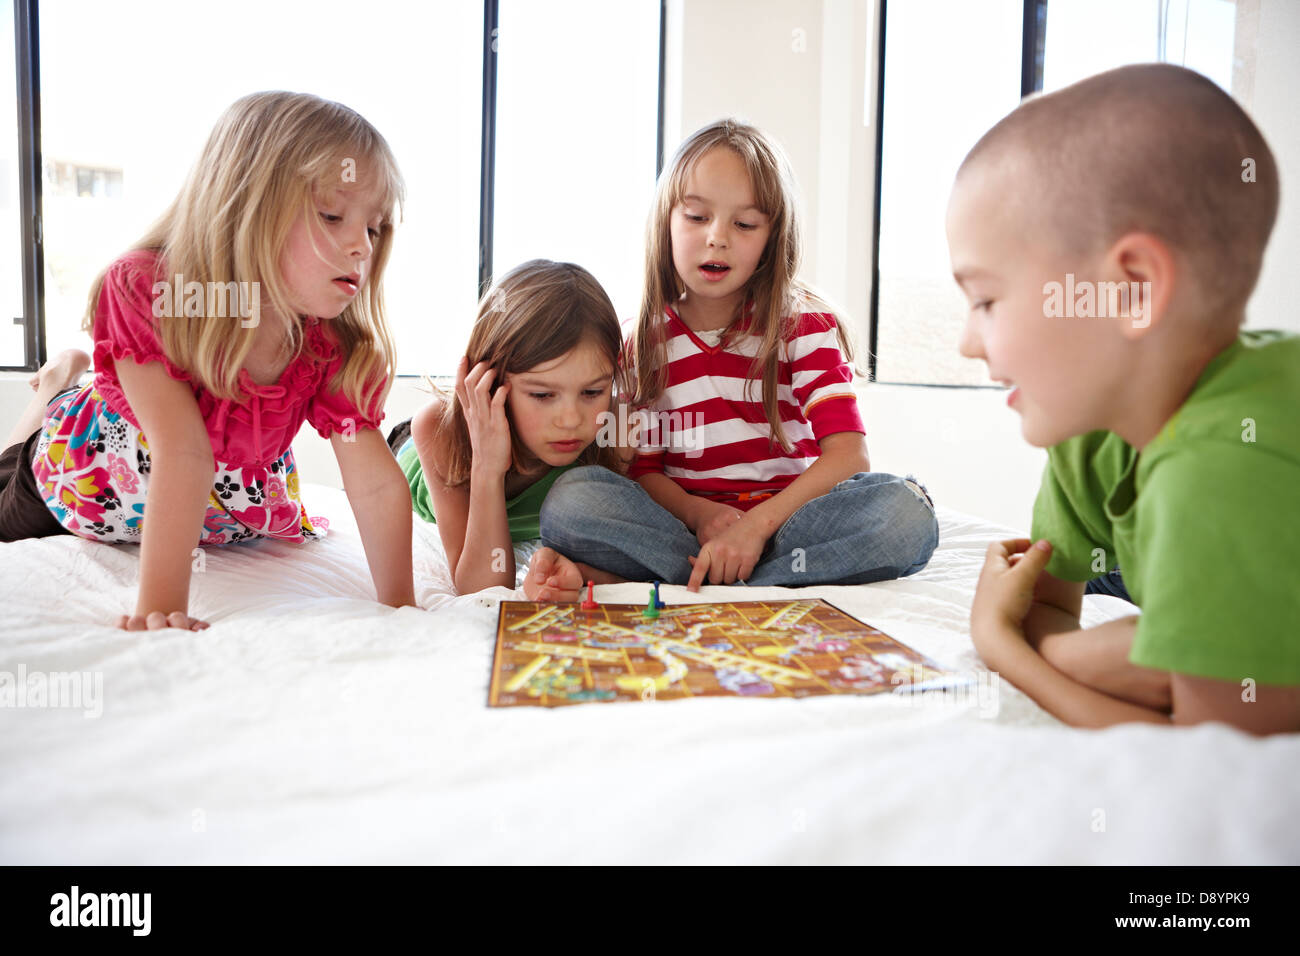 How to play snakes and ladders wikihow.